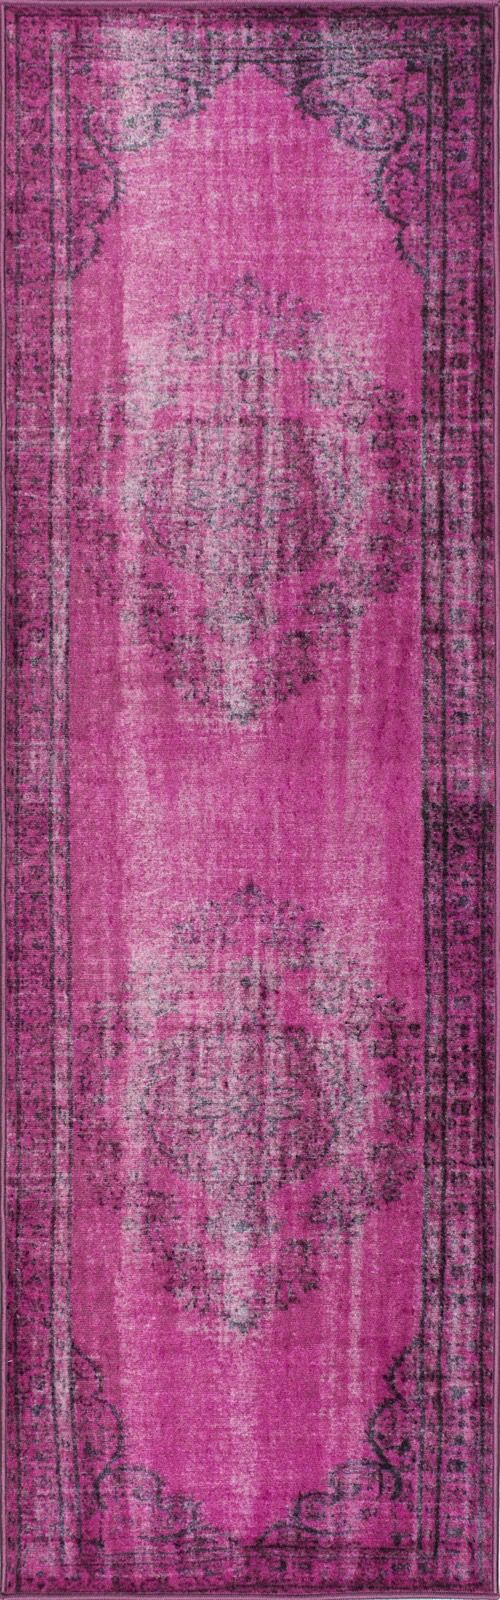 nuloom vintage inspired overdyed transitional area rug collection